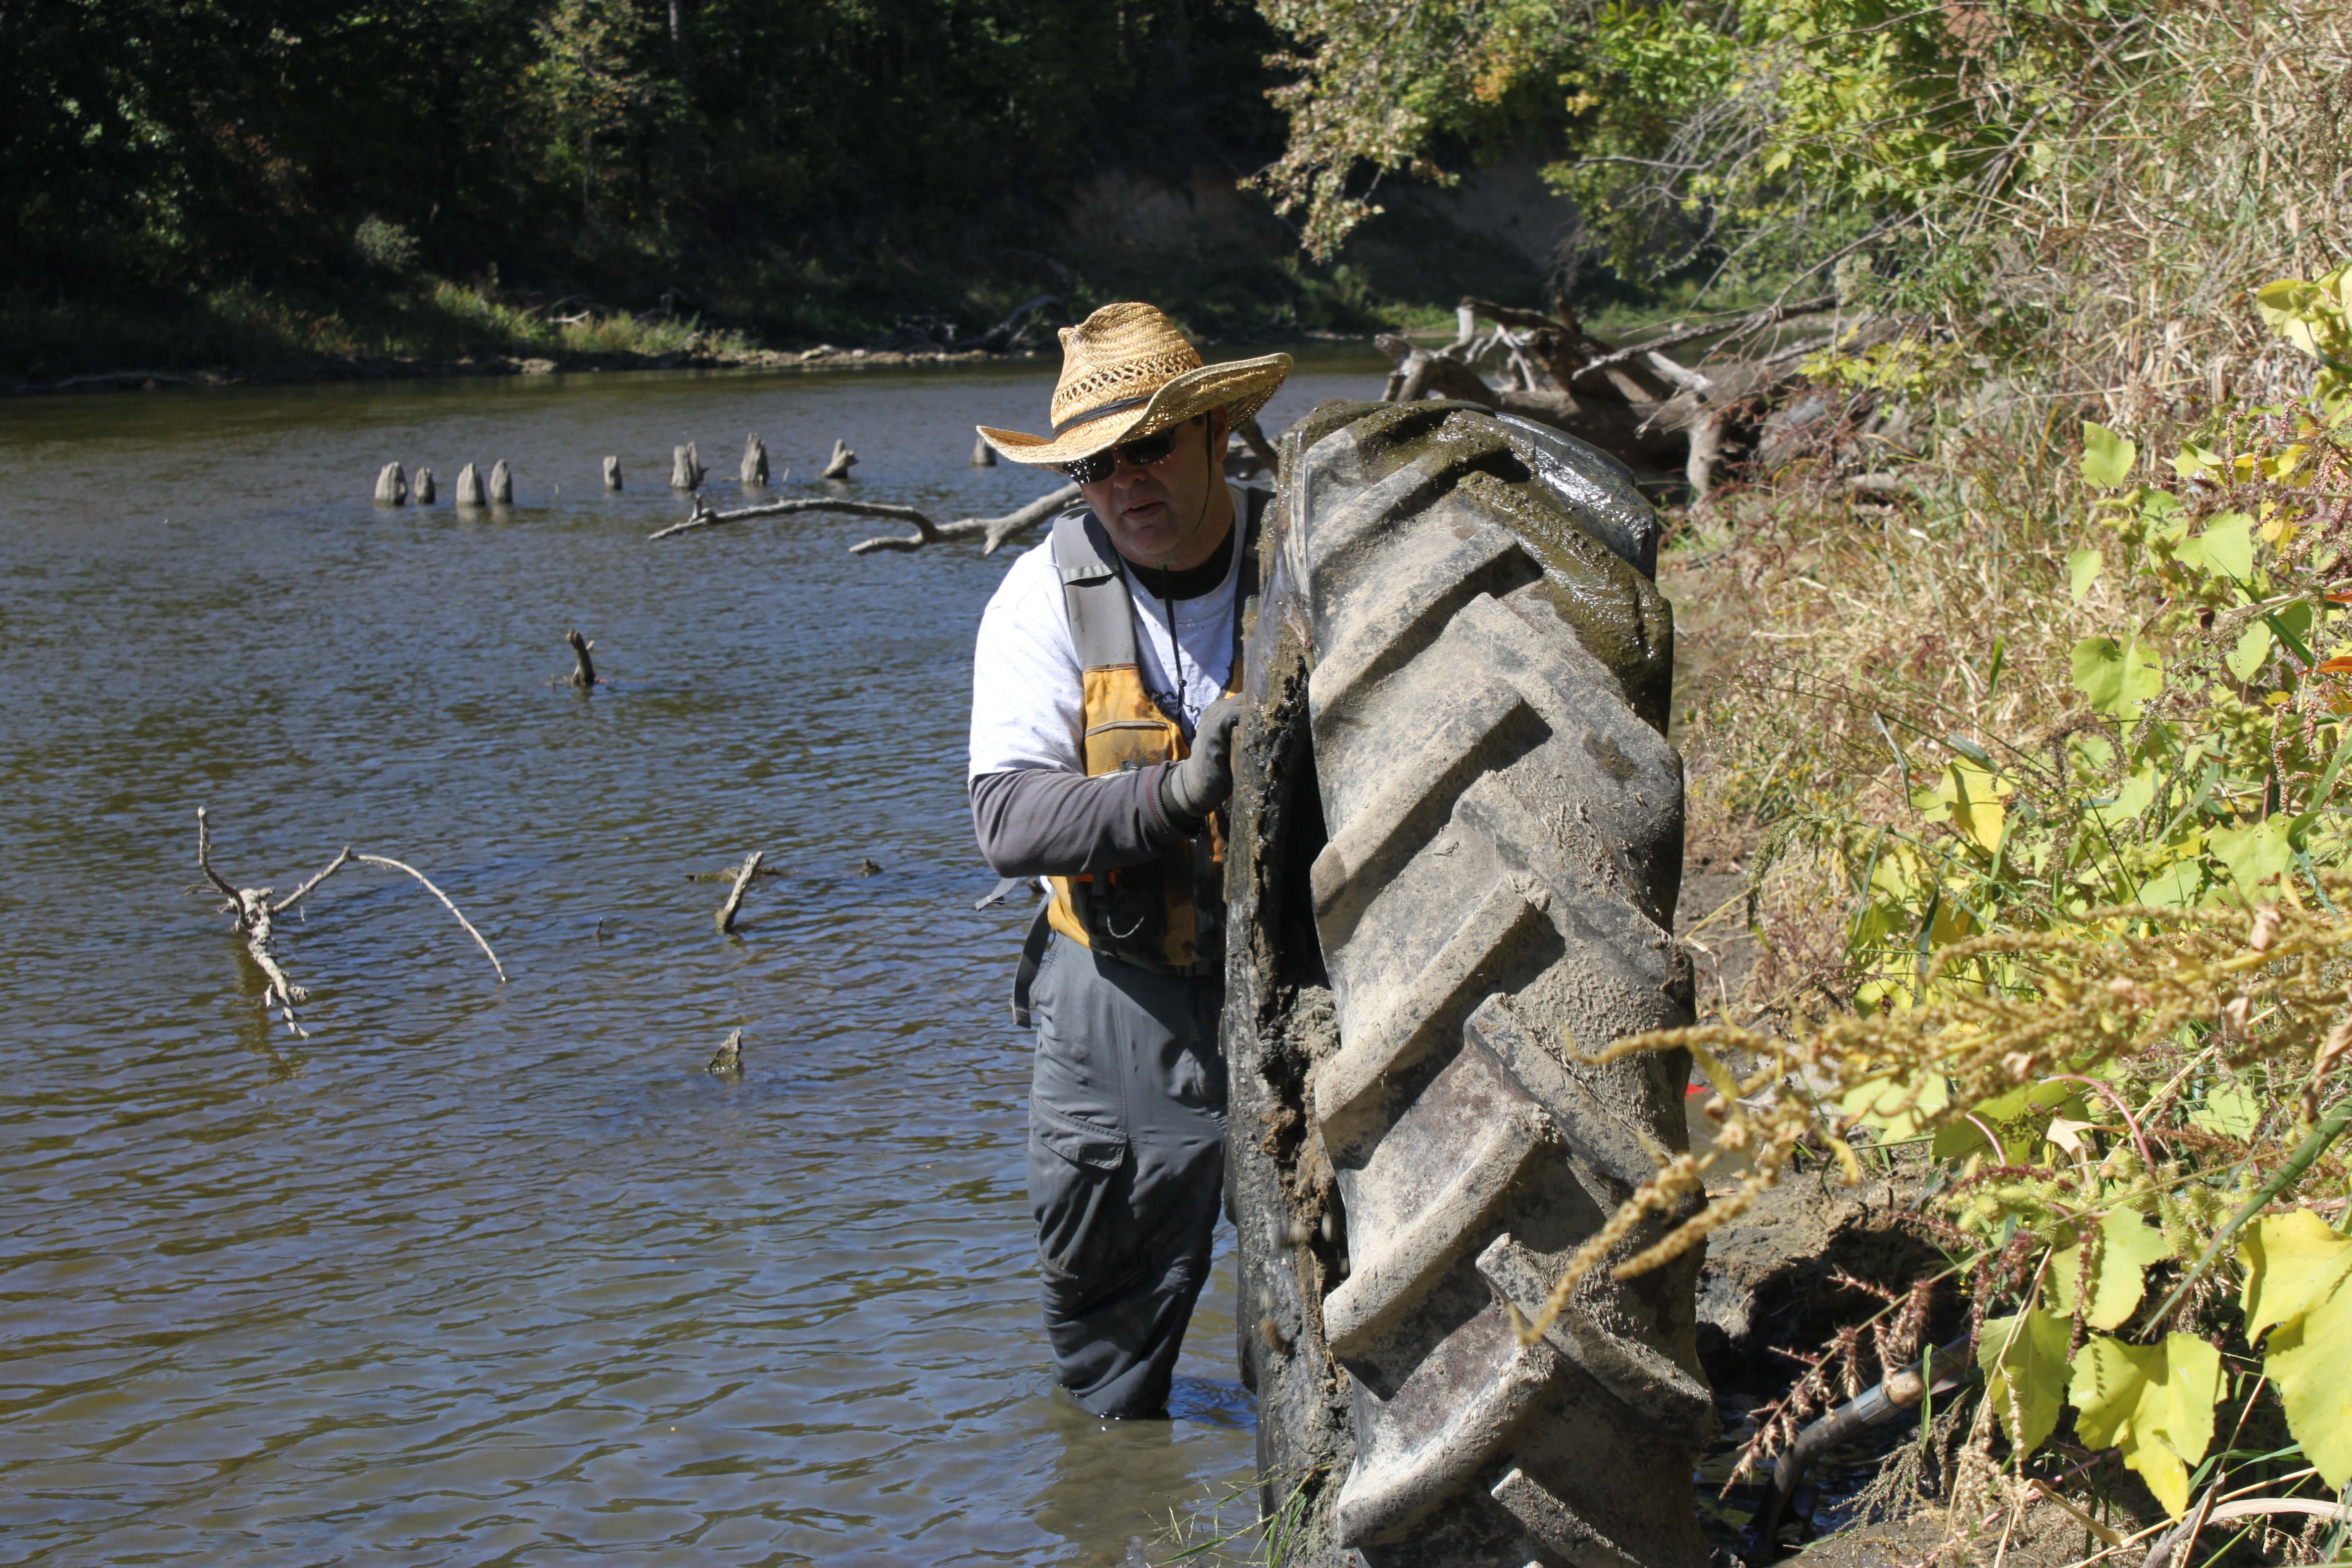 A volunteer pulls a tire out of the Iowa River.